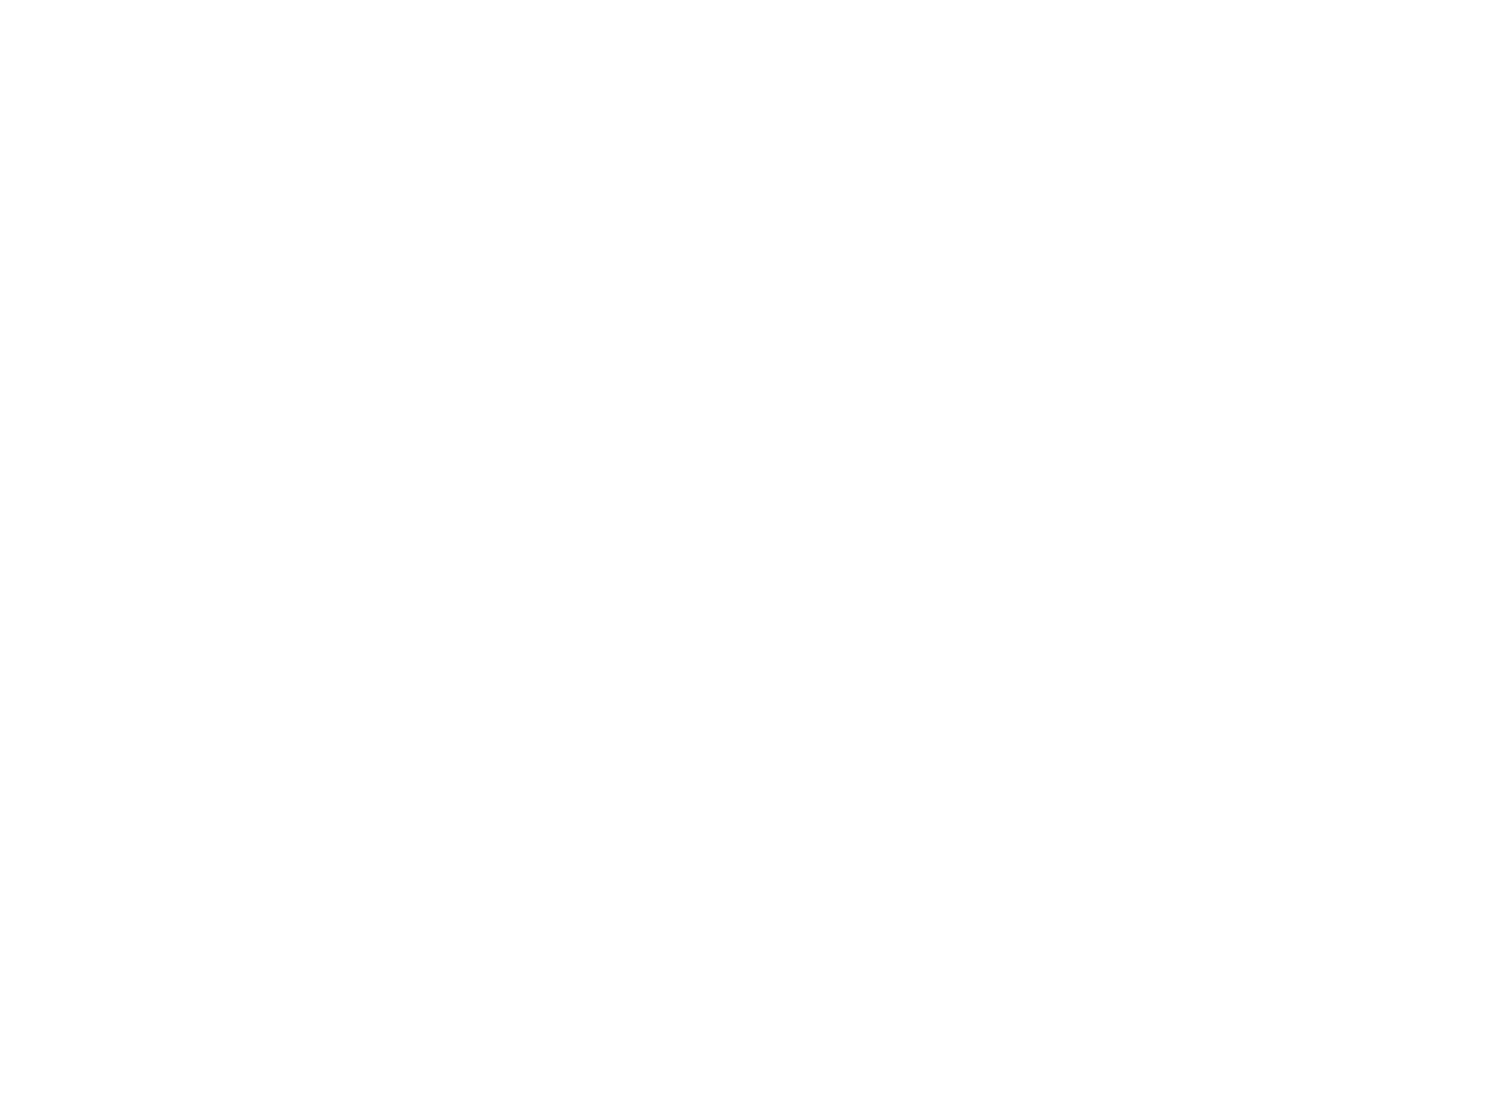 Space of the Art